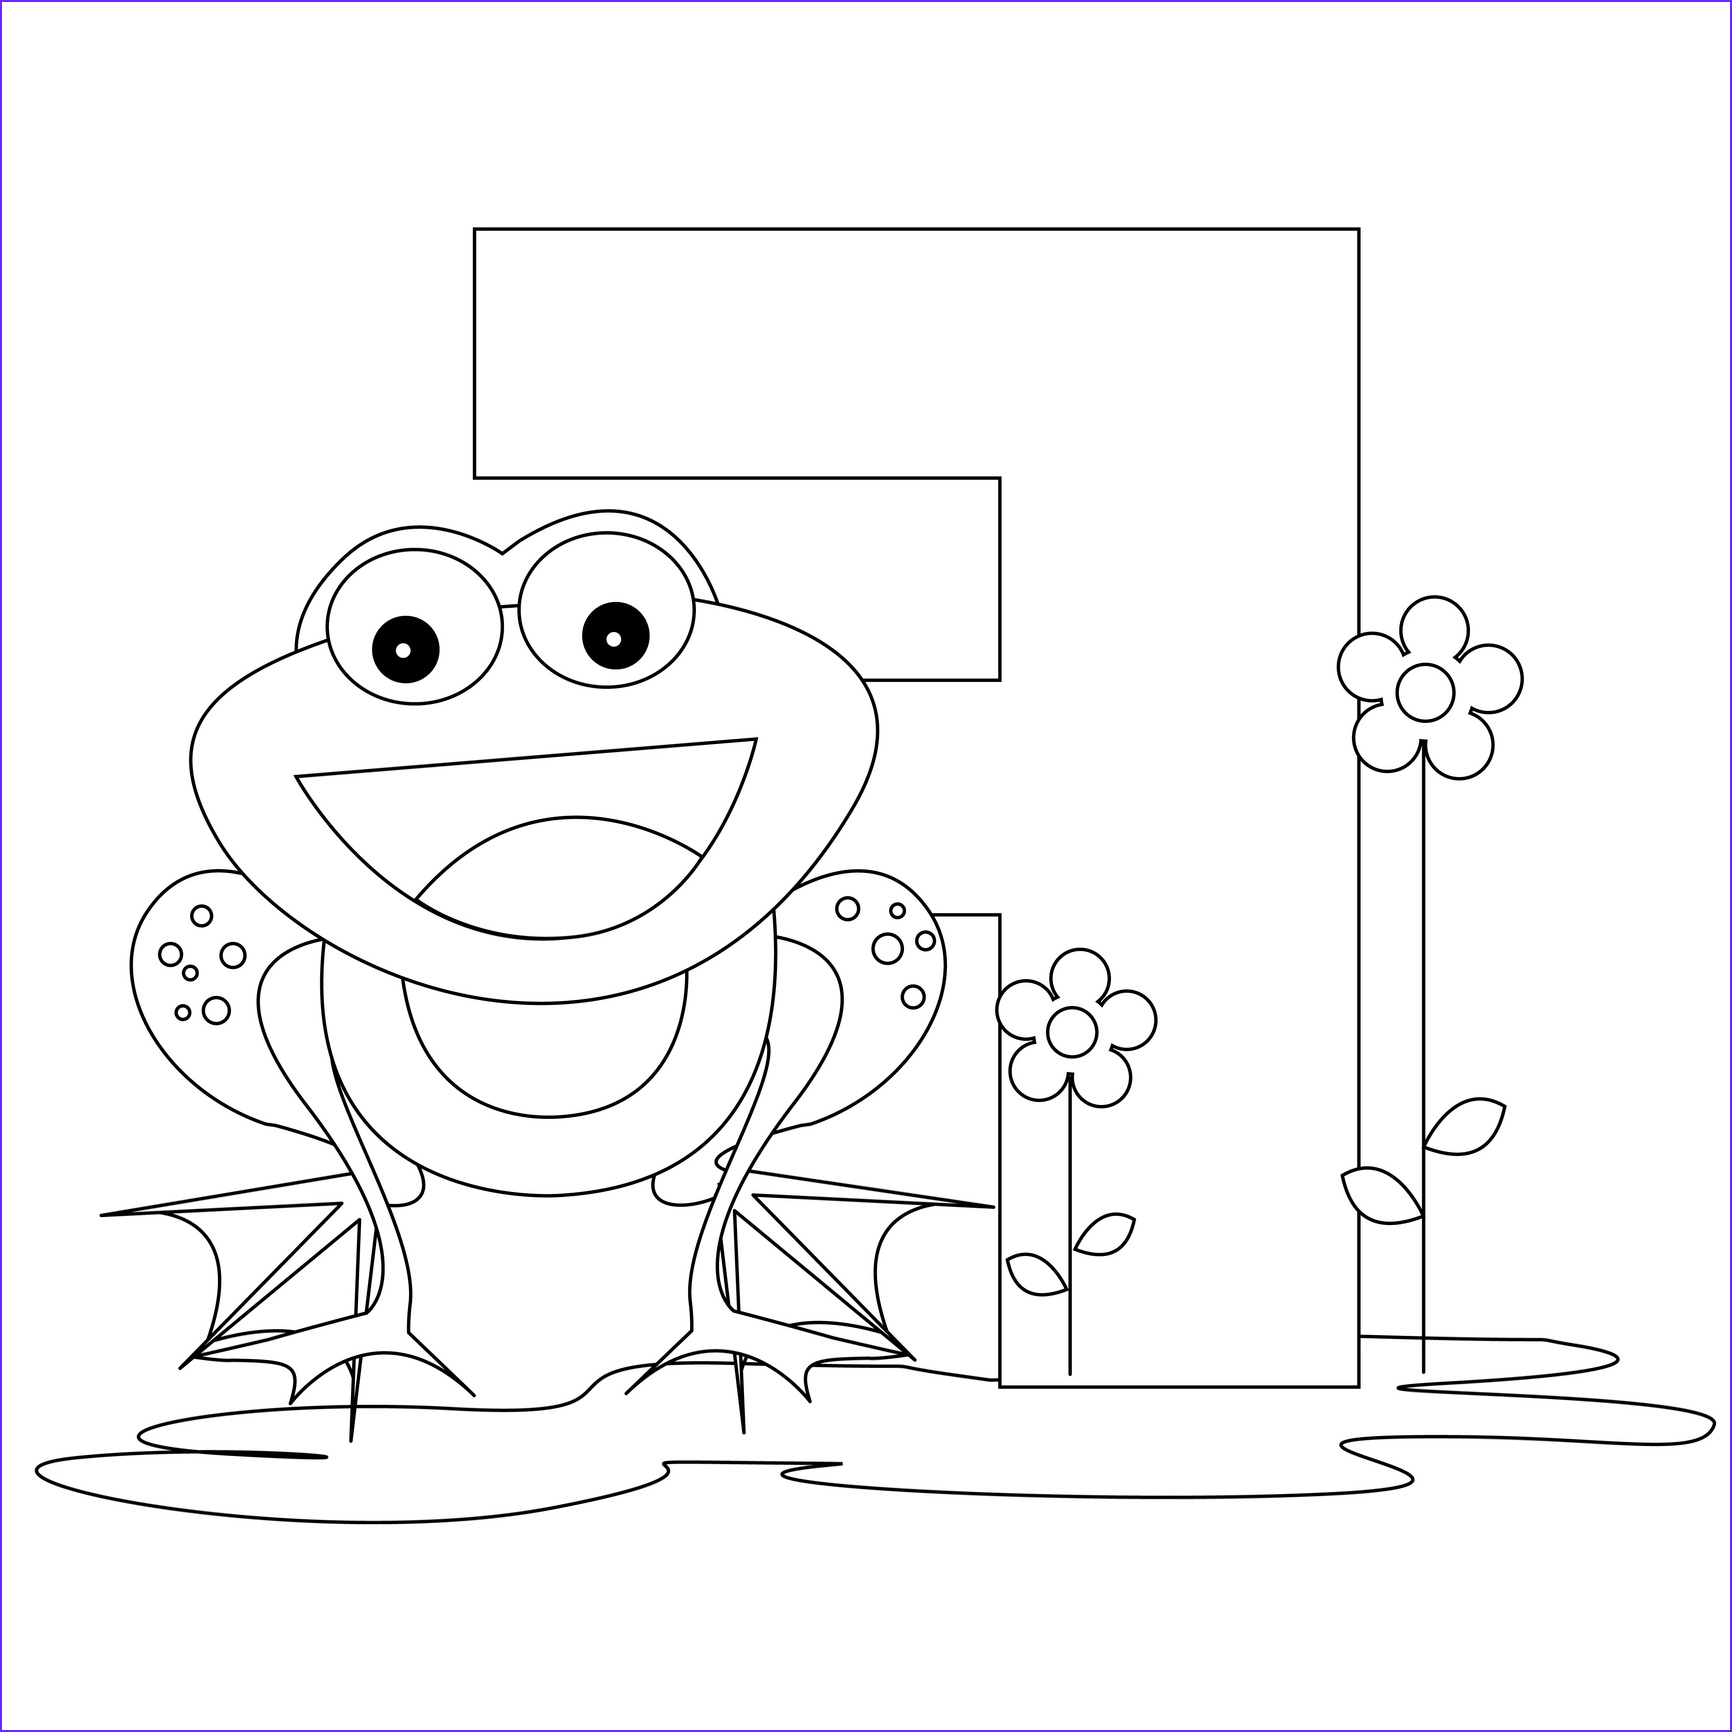 Alphabets Coloring Sheets Luxury Photography Letter F Coloring Pages to and Print for Free